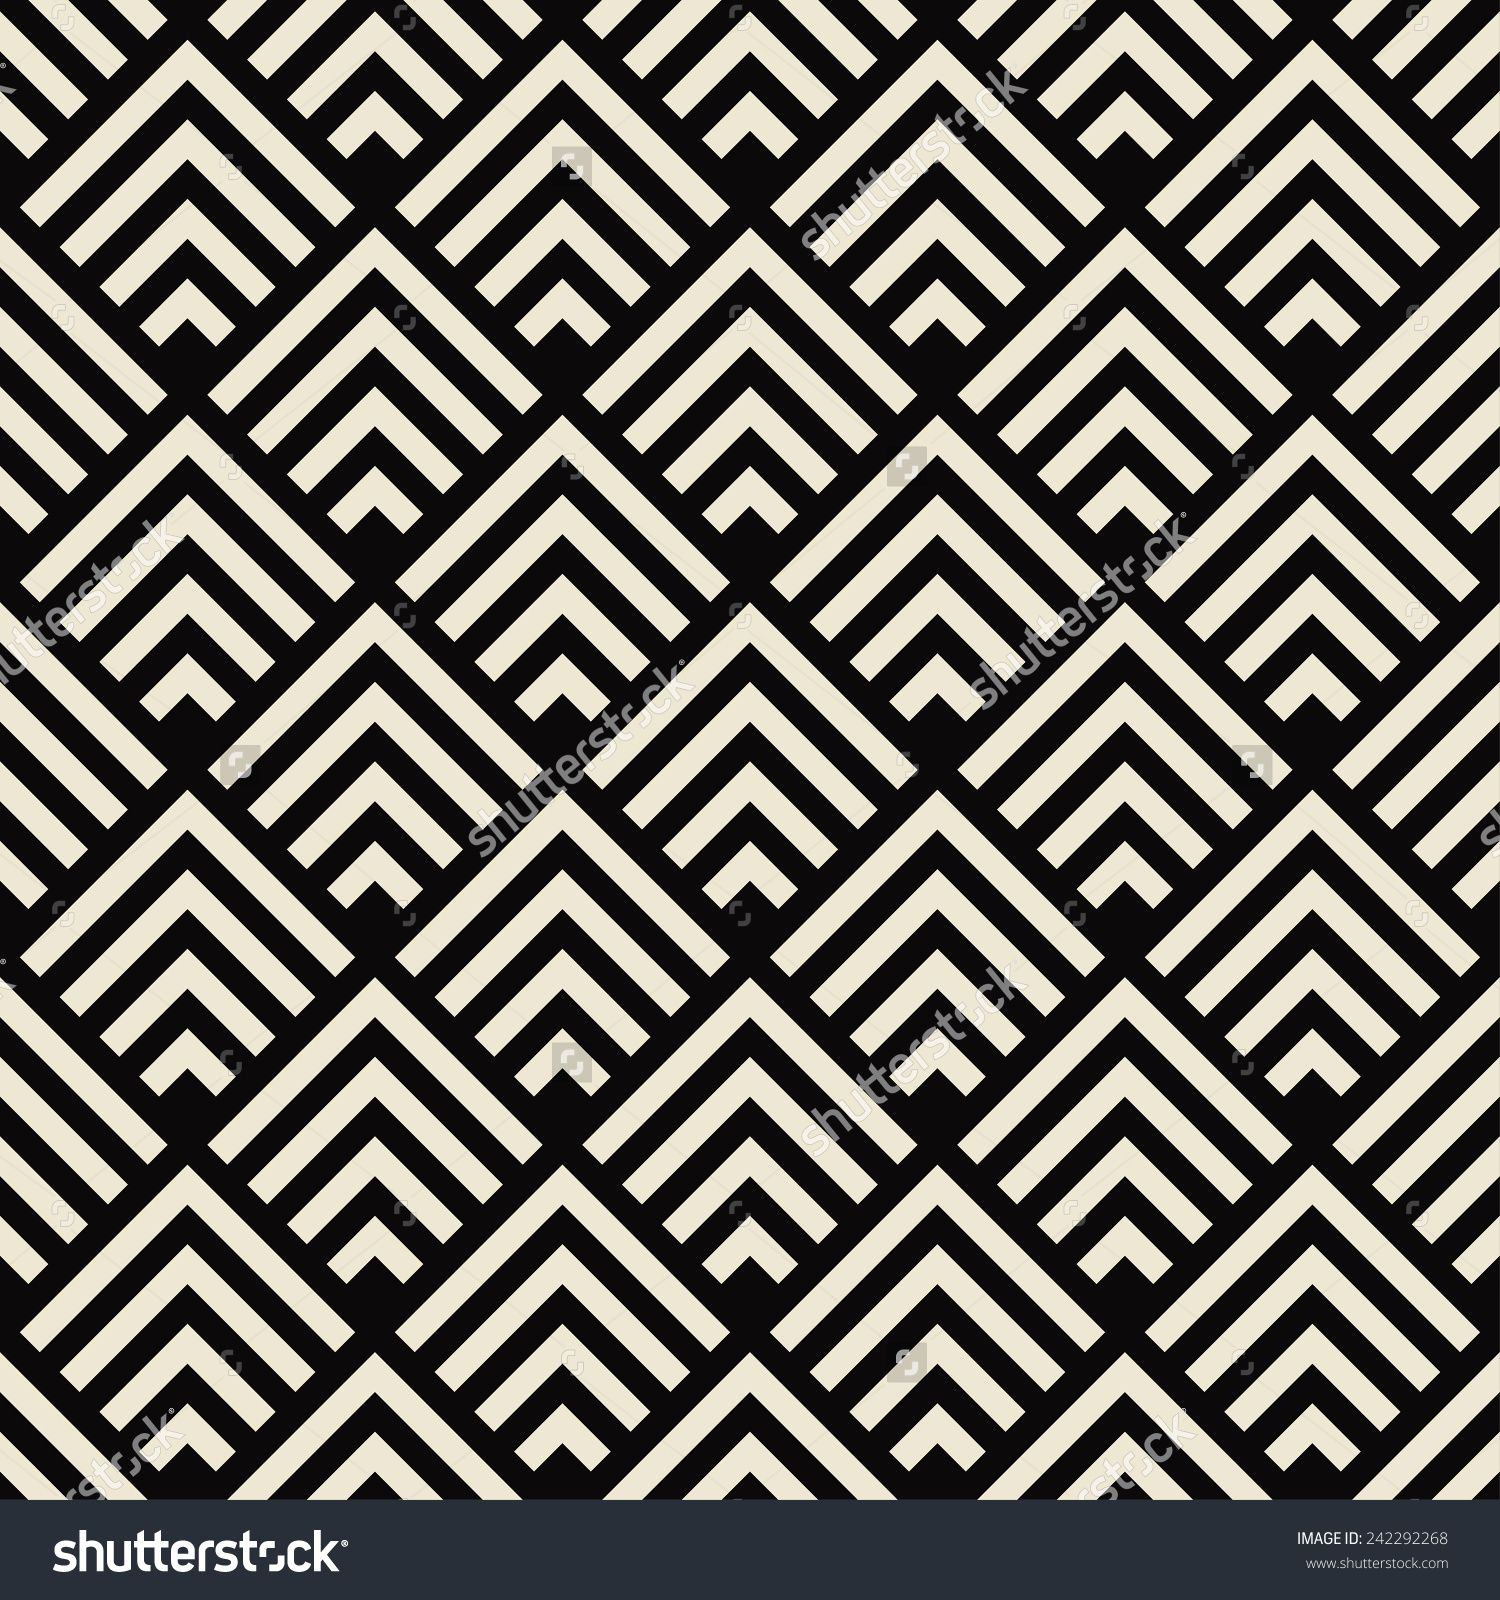 Art Deco Black And White Texture. Seamless Geometric Pattern ...